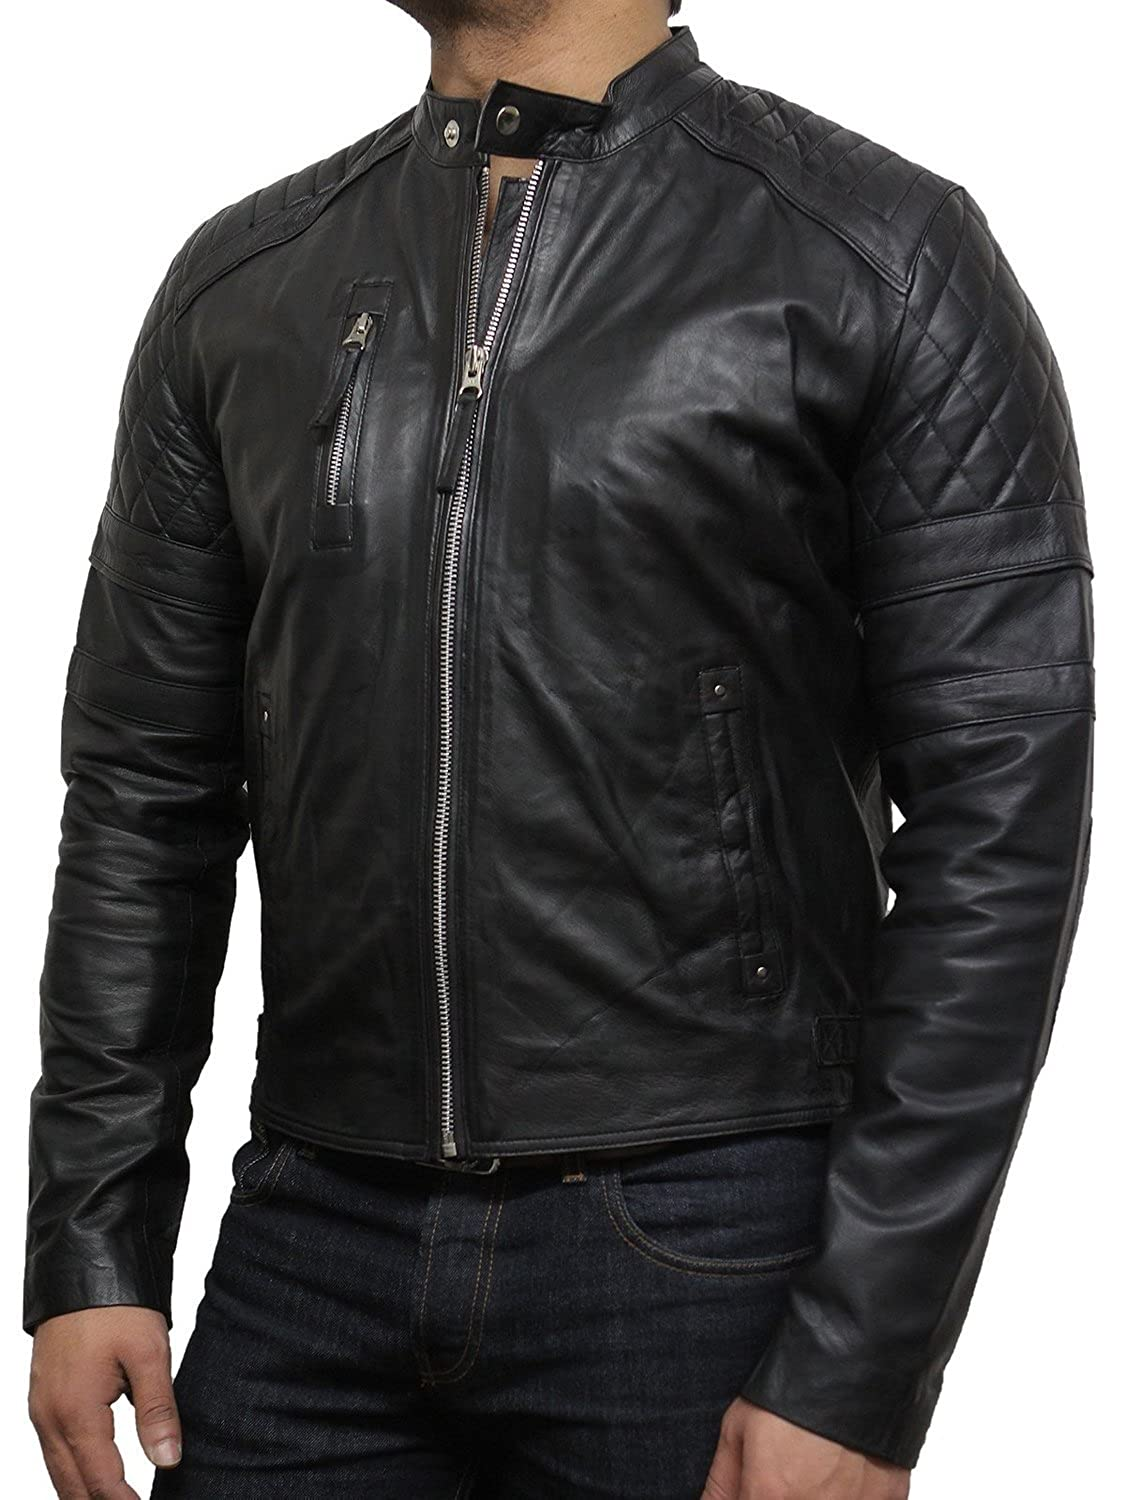 Mens Leather Biker Jacket With Diamond Quilted Stitching Black Designer Look